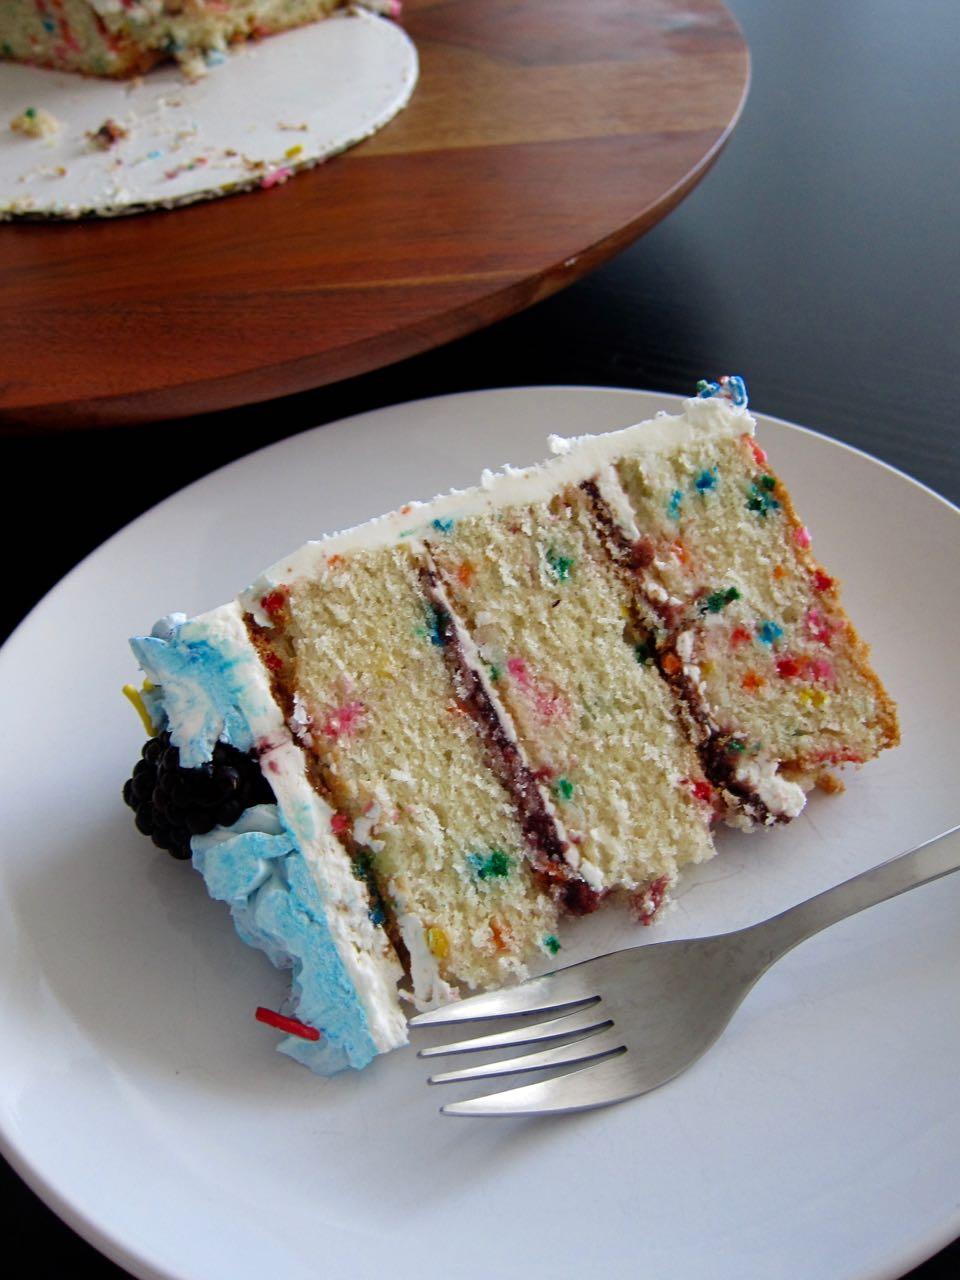 sliced funfetti and blackberry cake.jpg